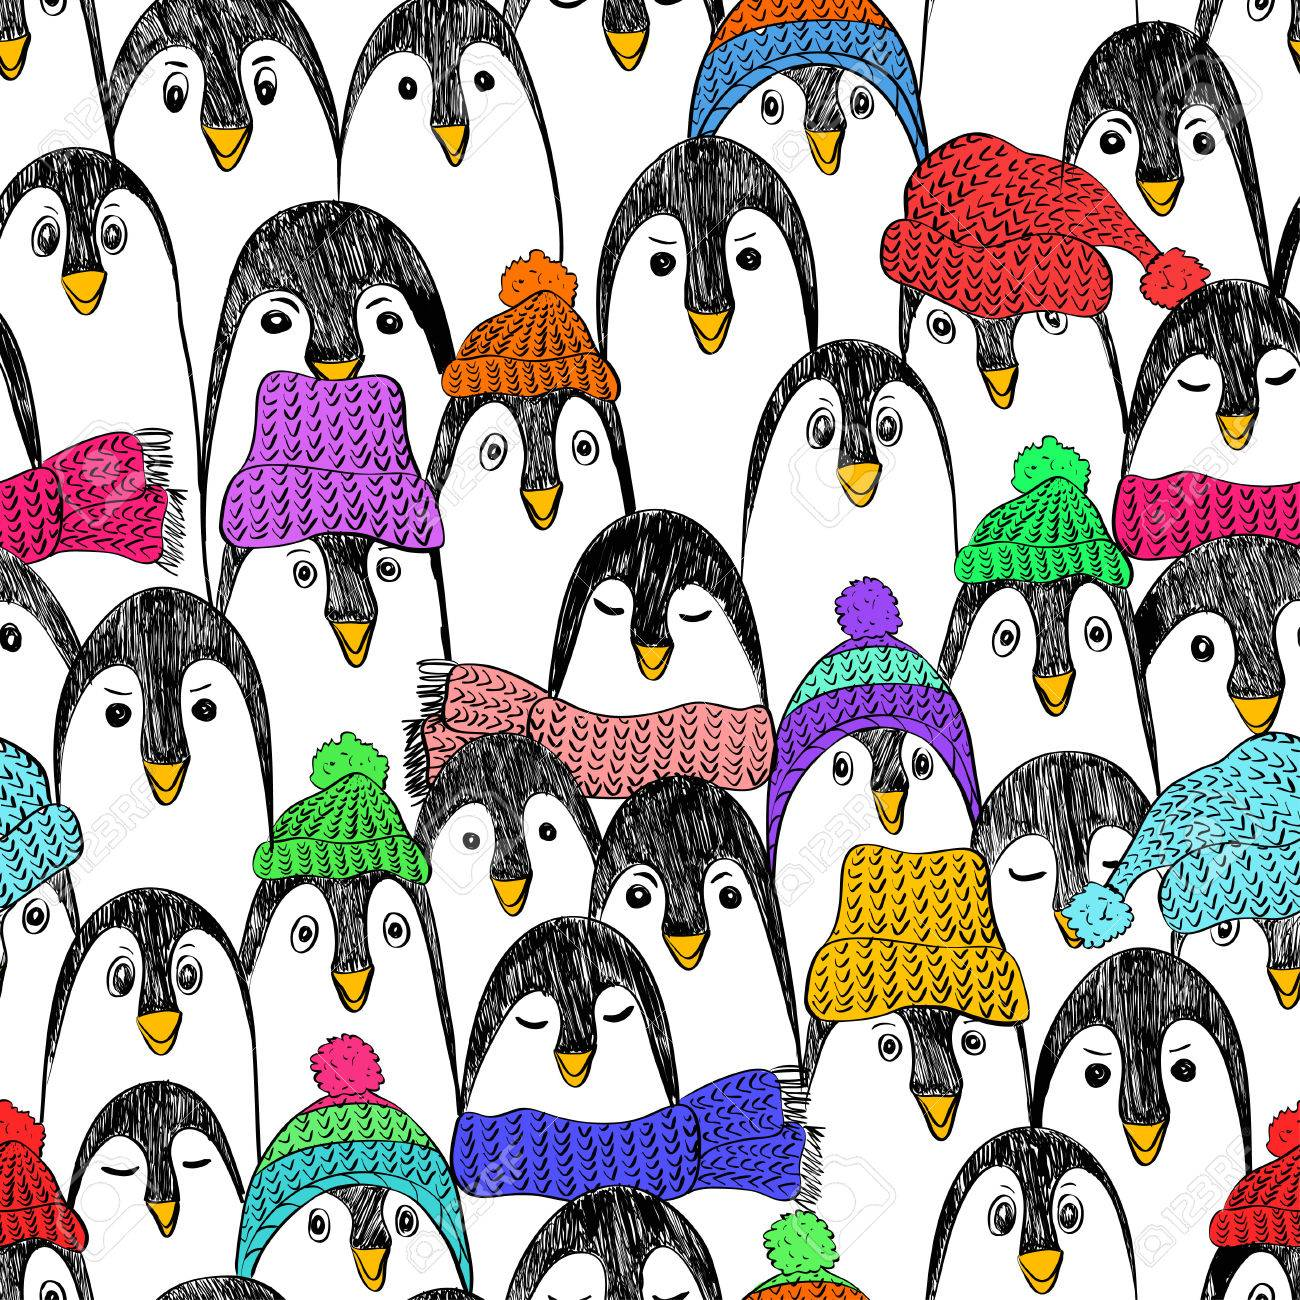 Graphic seamless pattern with cute hand drawn penguins in colorful hats and scarfs. Funny penguin background. - 55913640